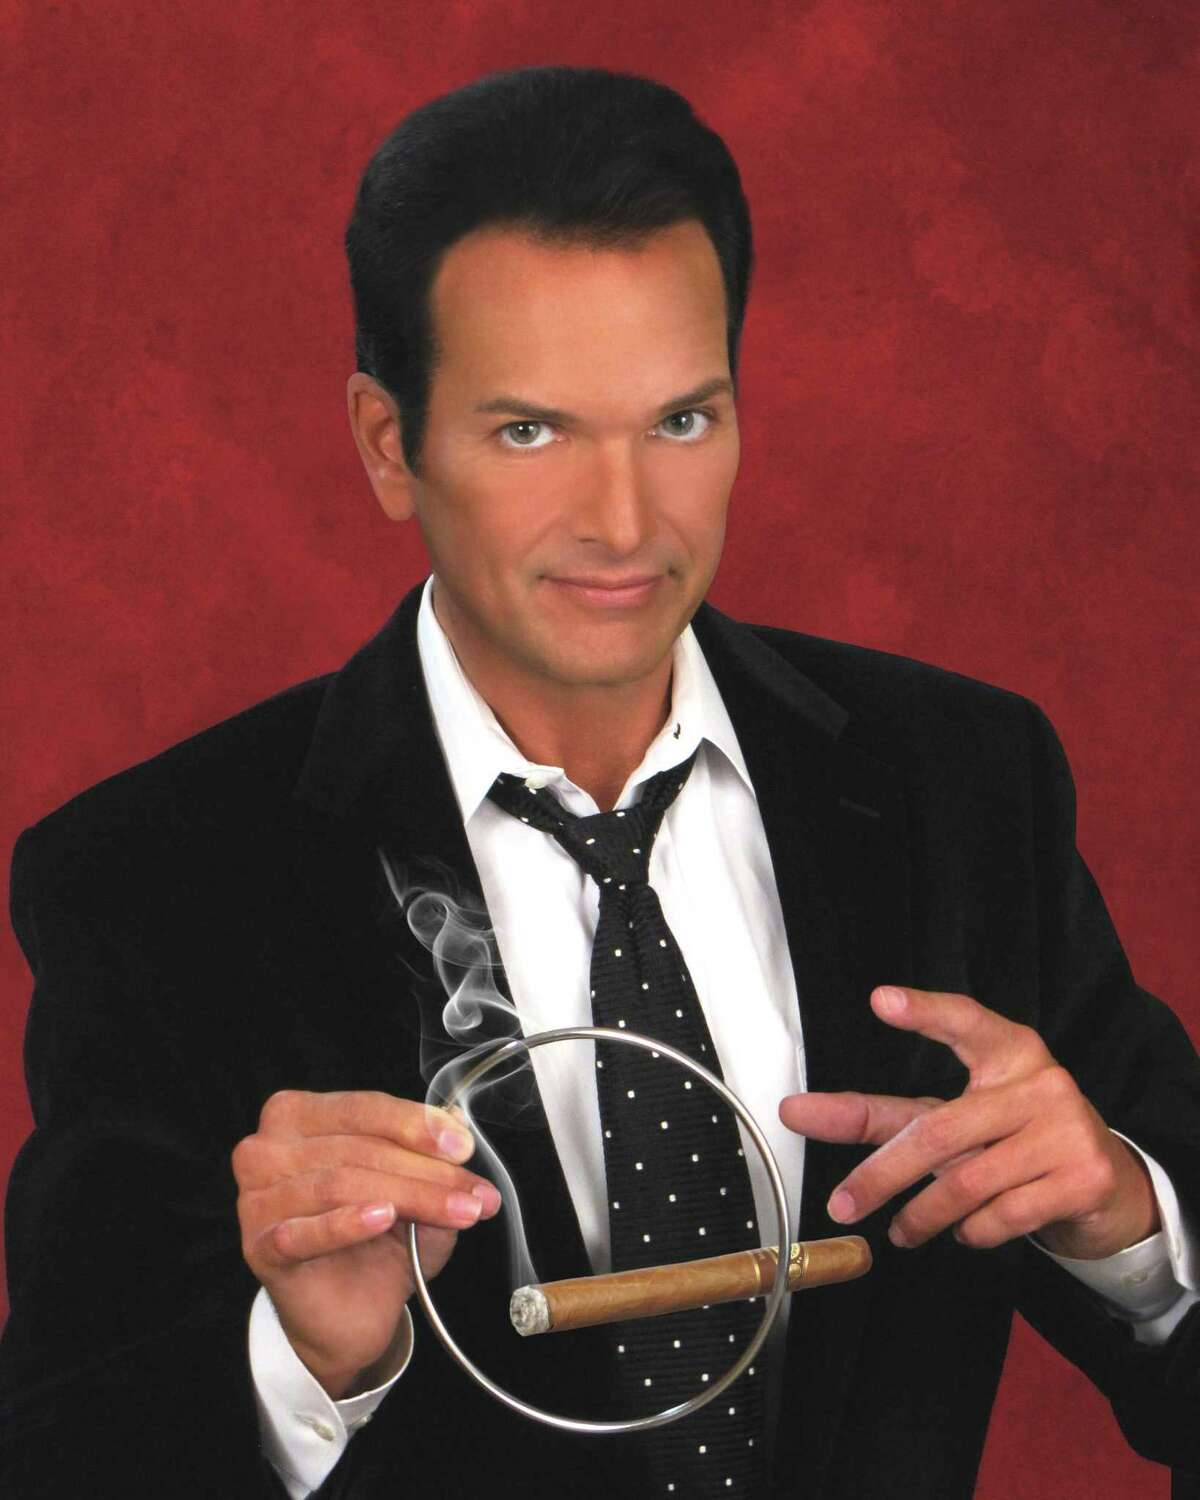 Houston magician Paul Driscoll is one of several magicians who will perform and lecture at the Texas Association of Magicians 2019 Convention, which runs Aug. 30- Sept. 2, 2019 in San Antonio.